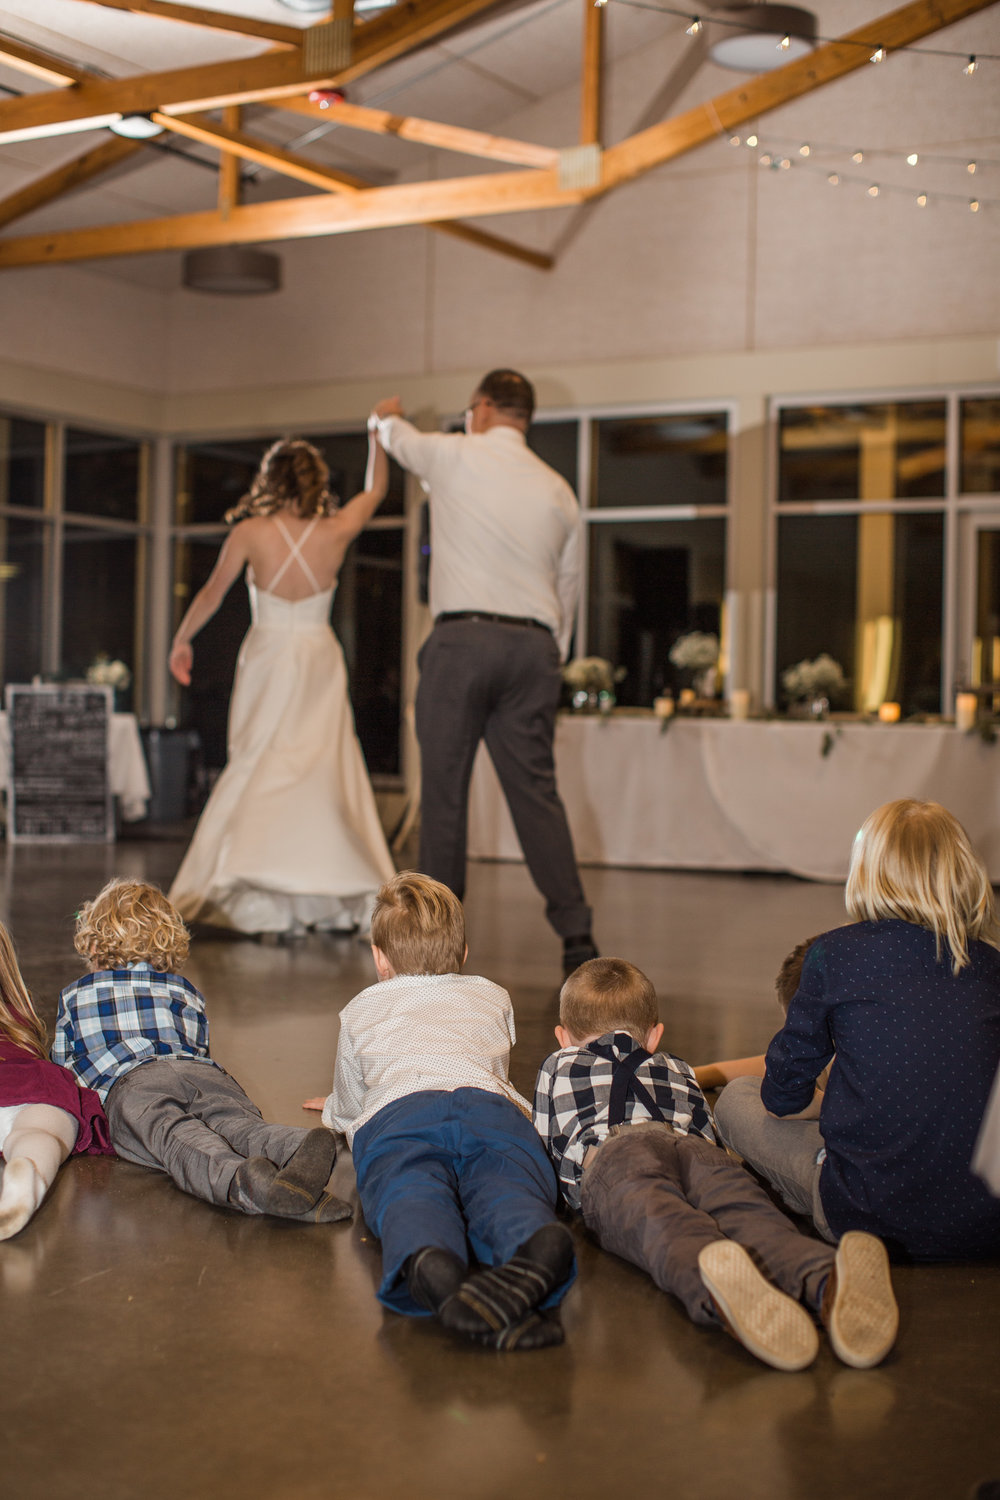 kids watching bride dance with her dad at wedding reception